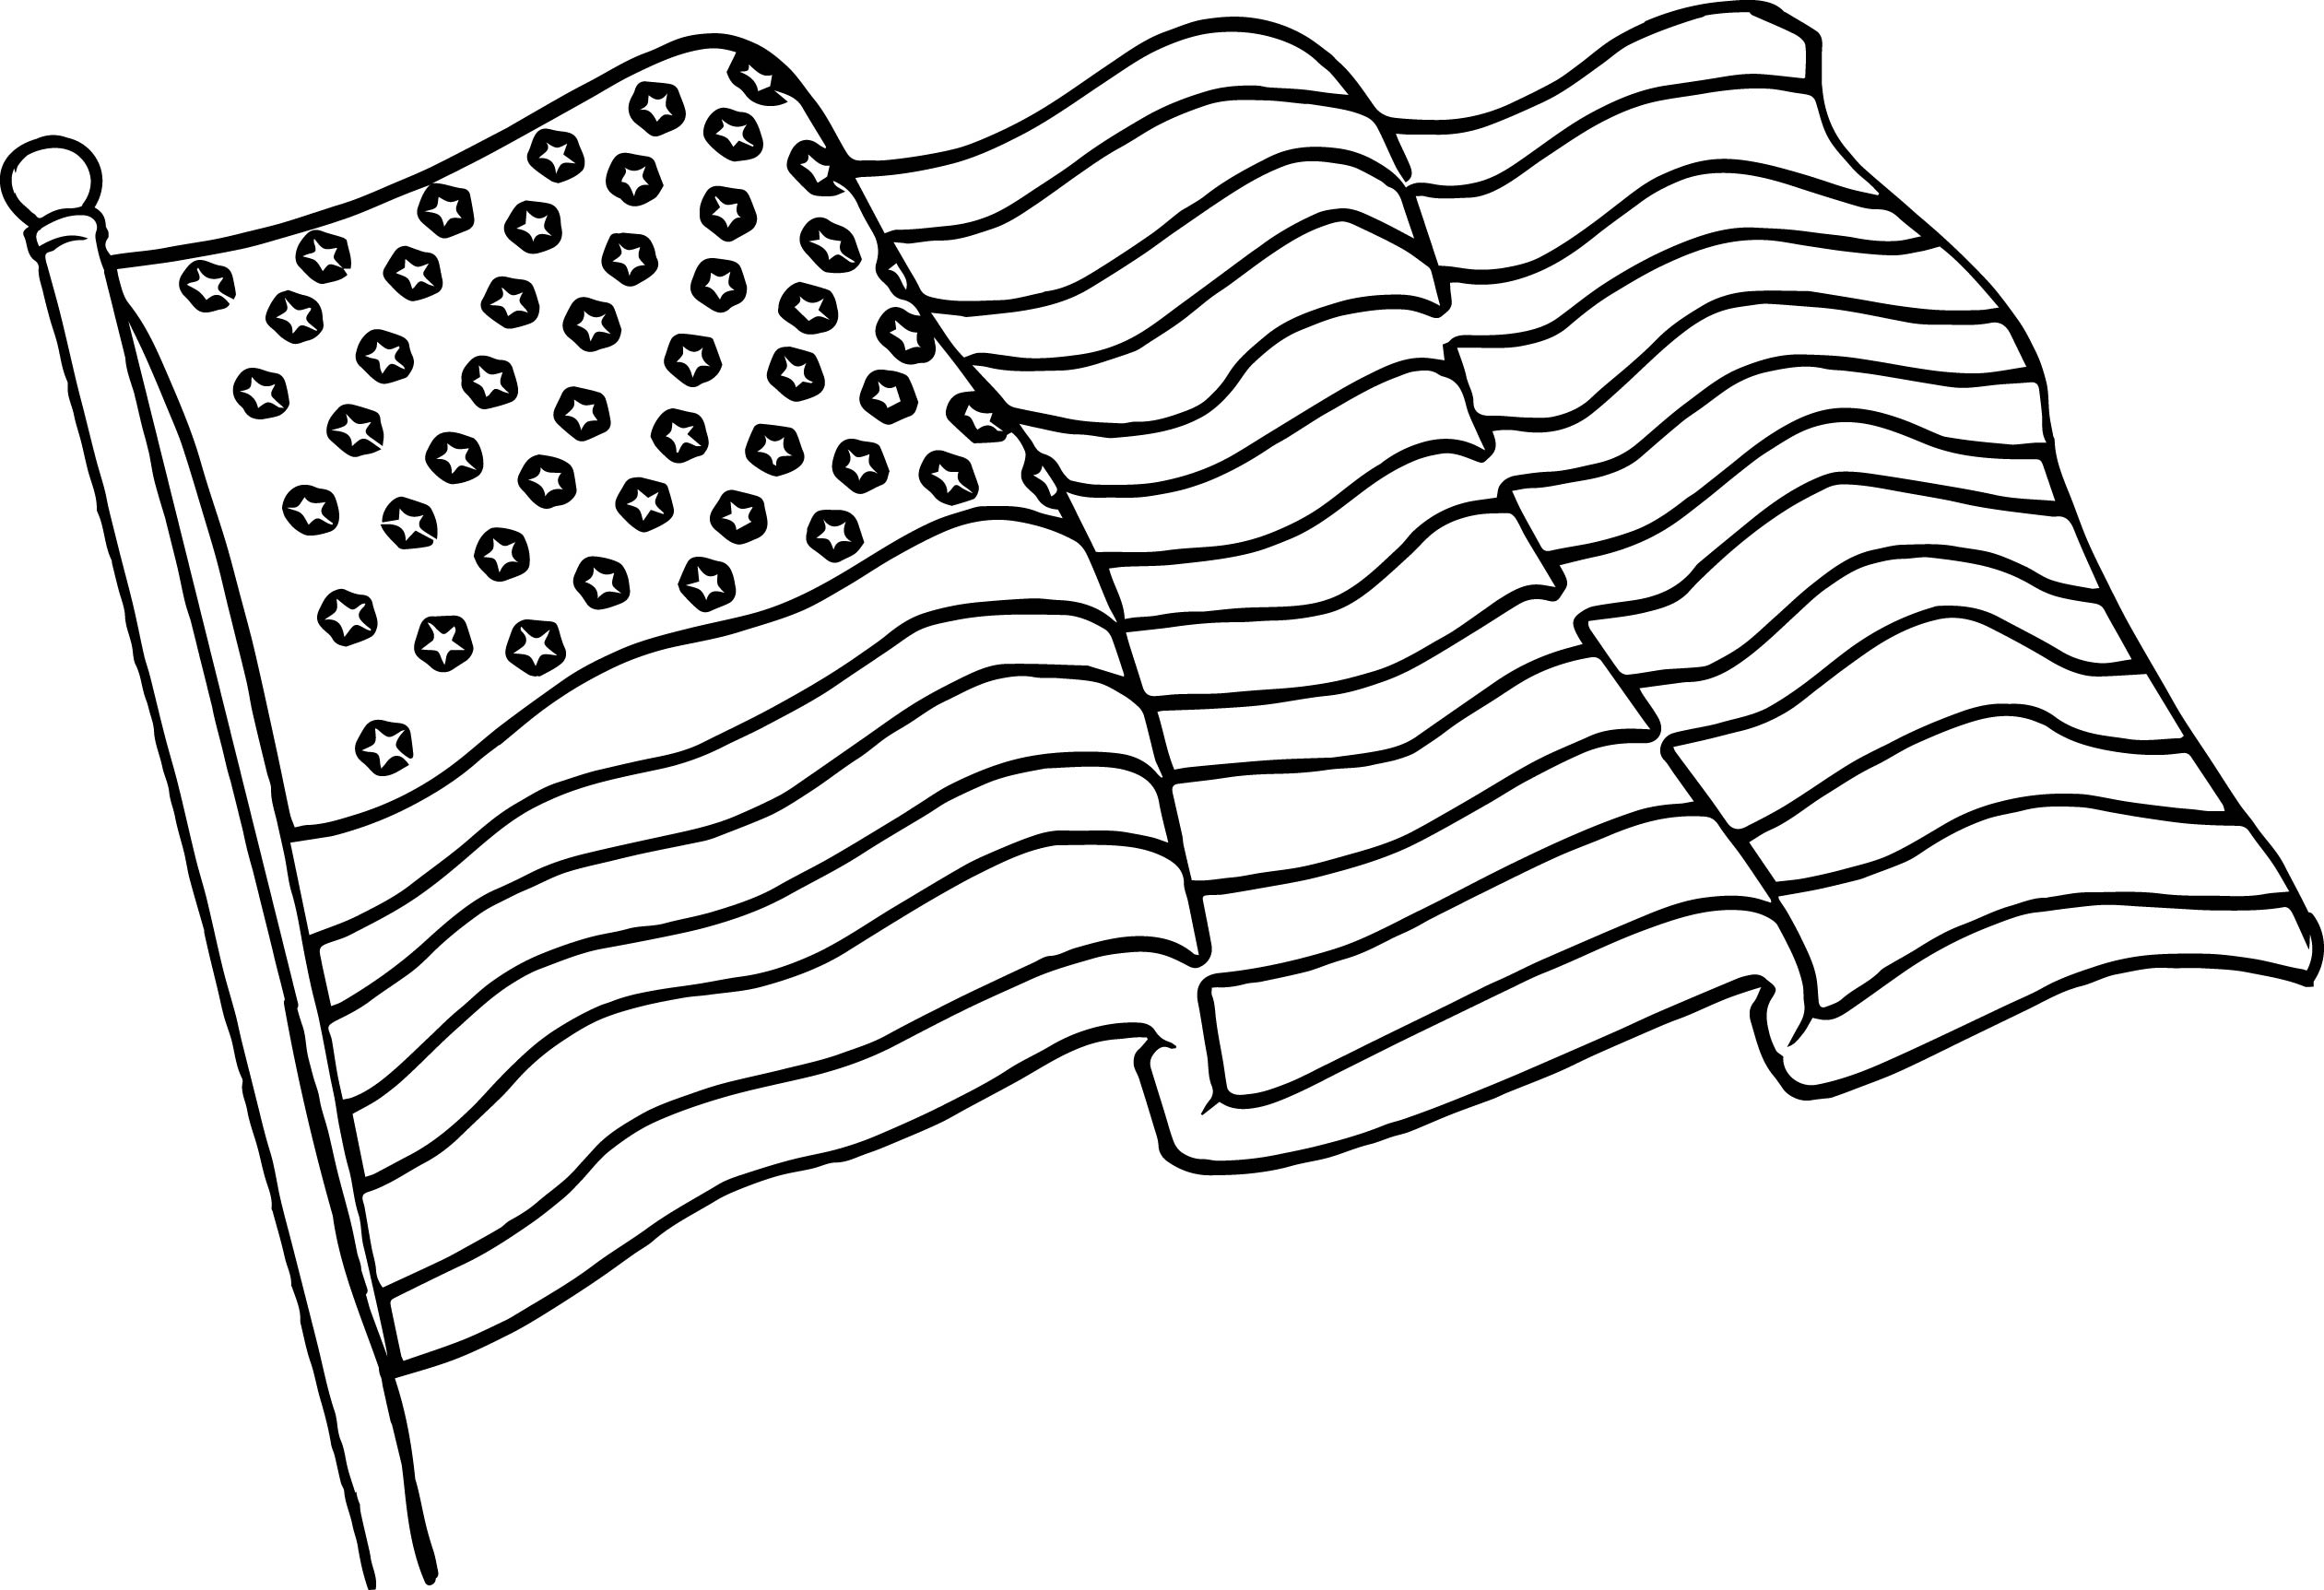 coloring printable flags american flag coloring pages you can print on the site printable coloring flags